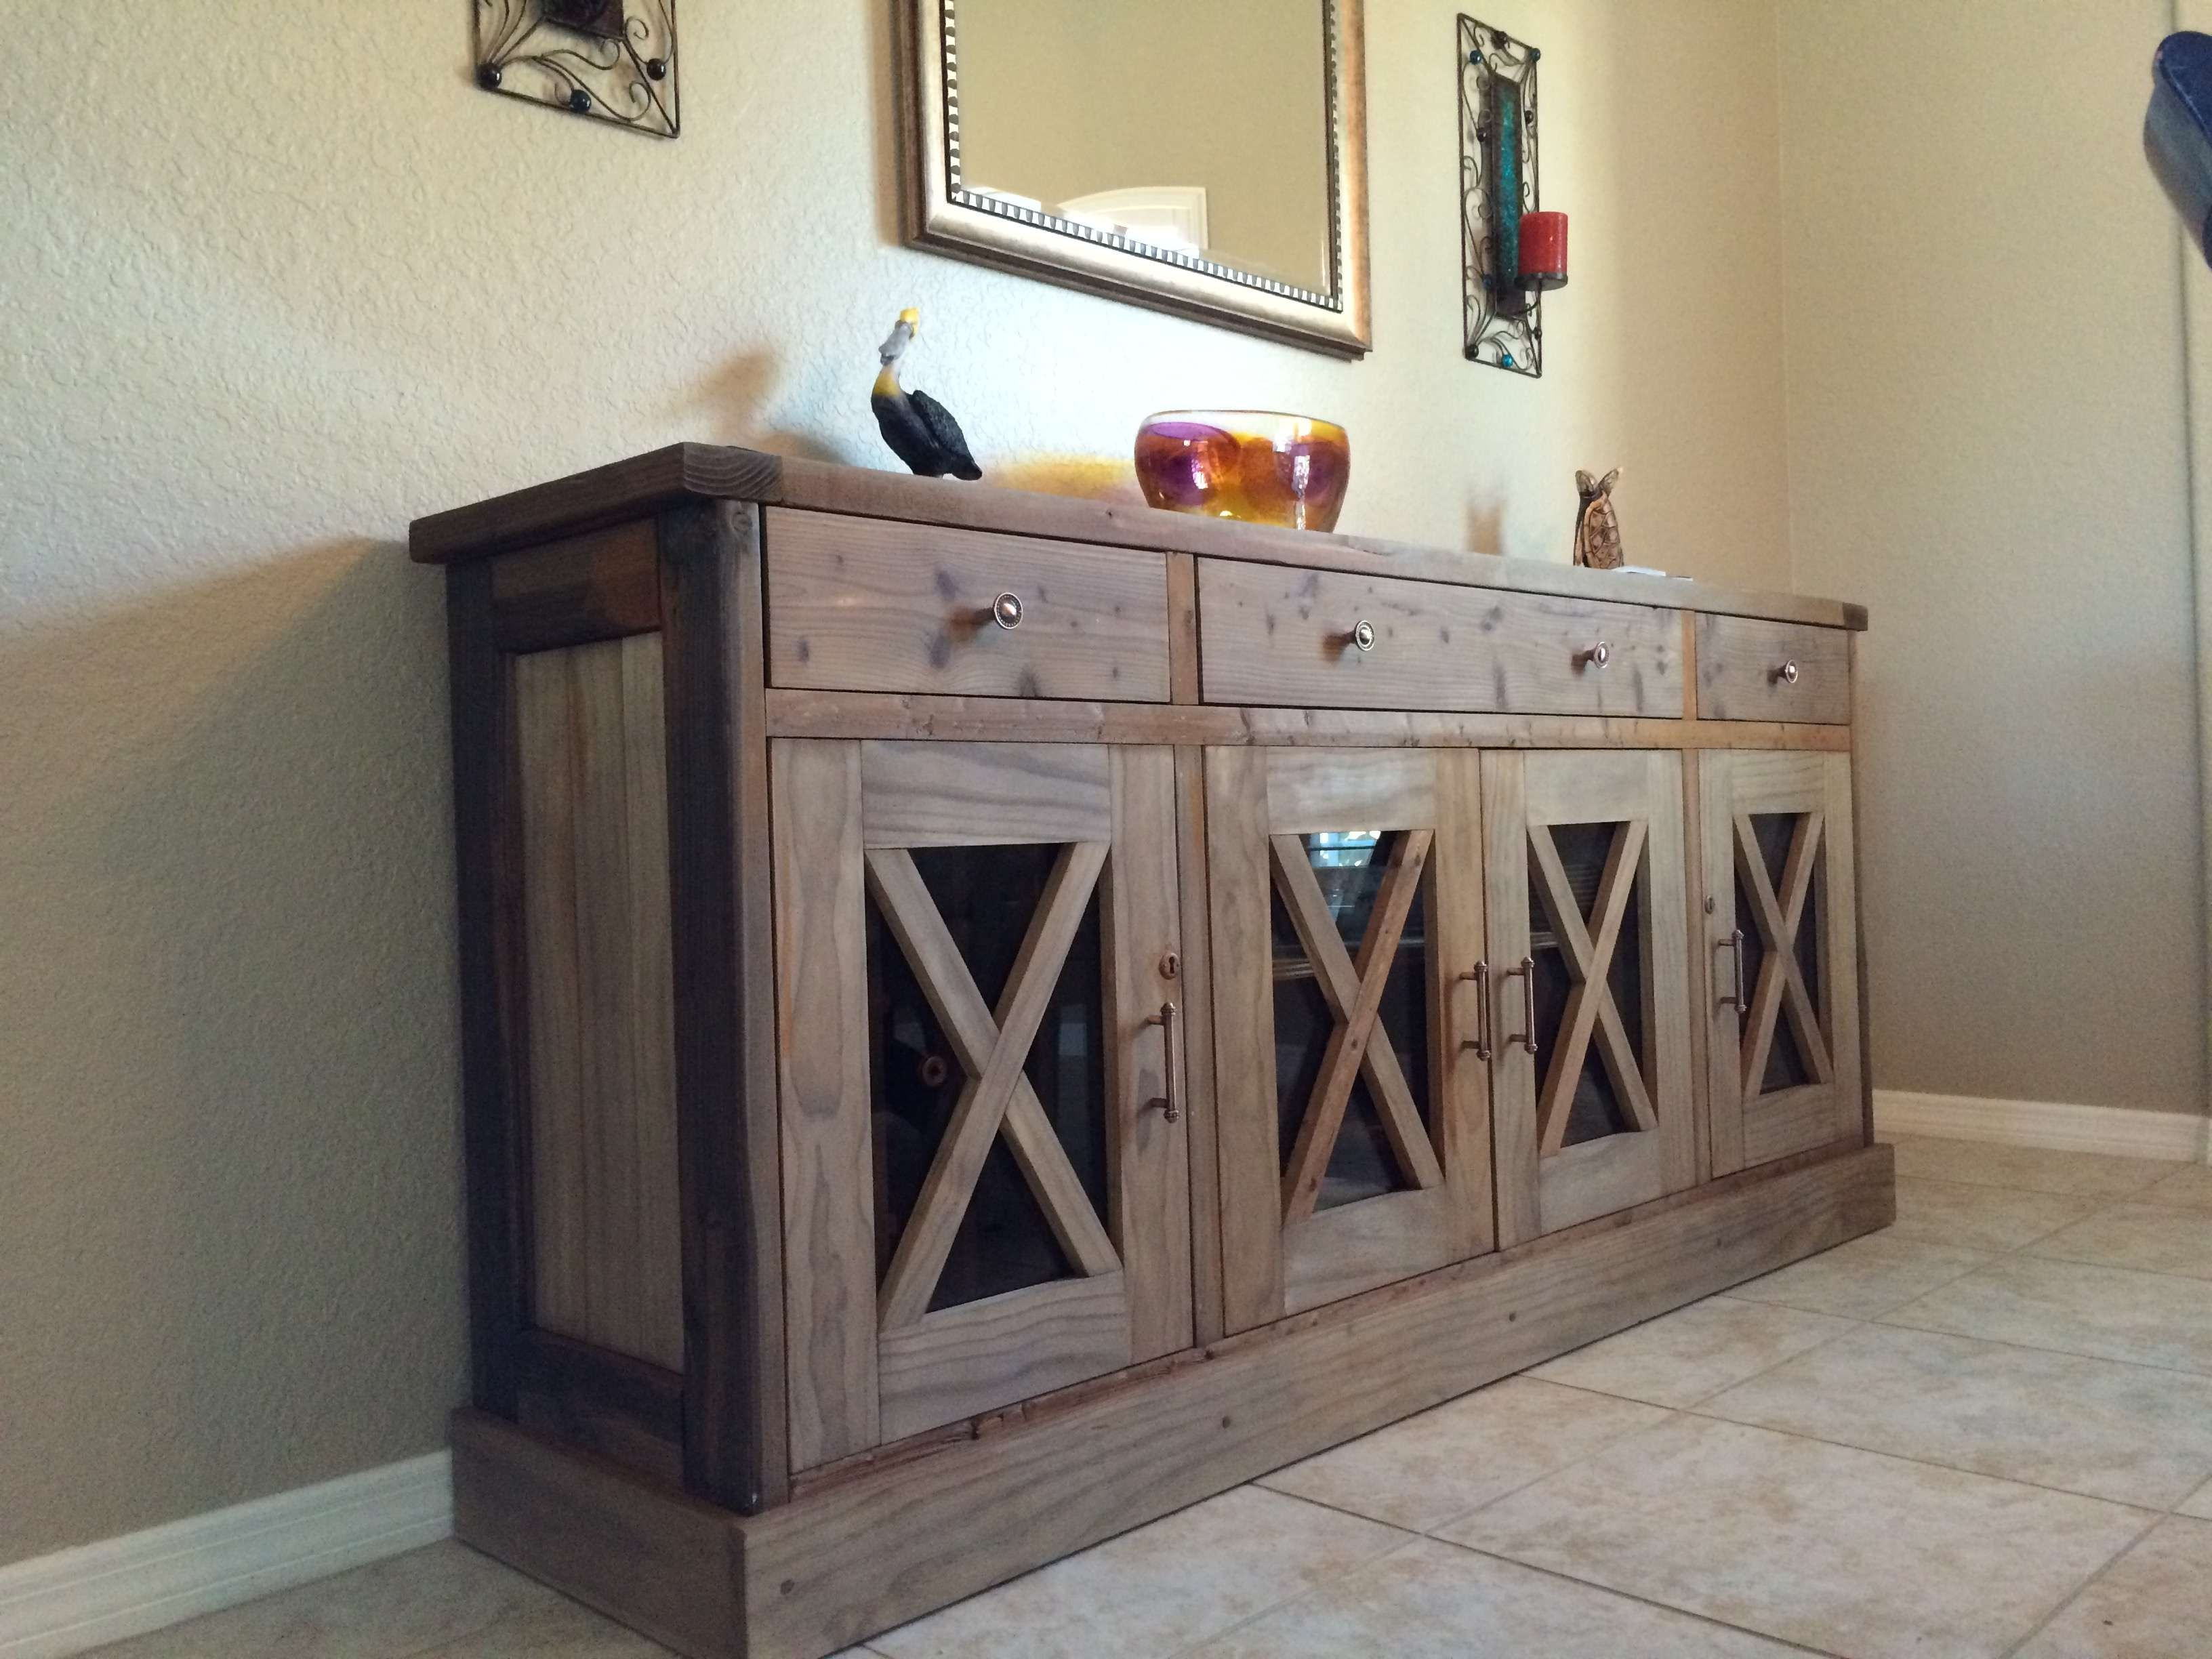 Ana White | Dining Room Sideboard – Diy Projects Throughout Diy Sideboards (View 5 of 20)